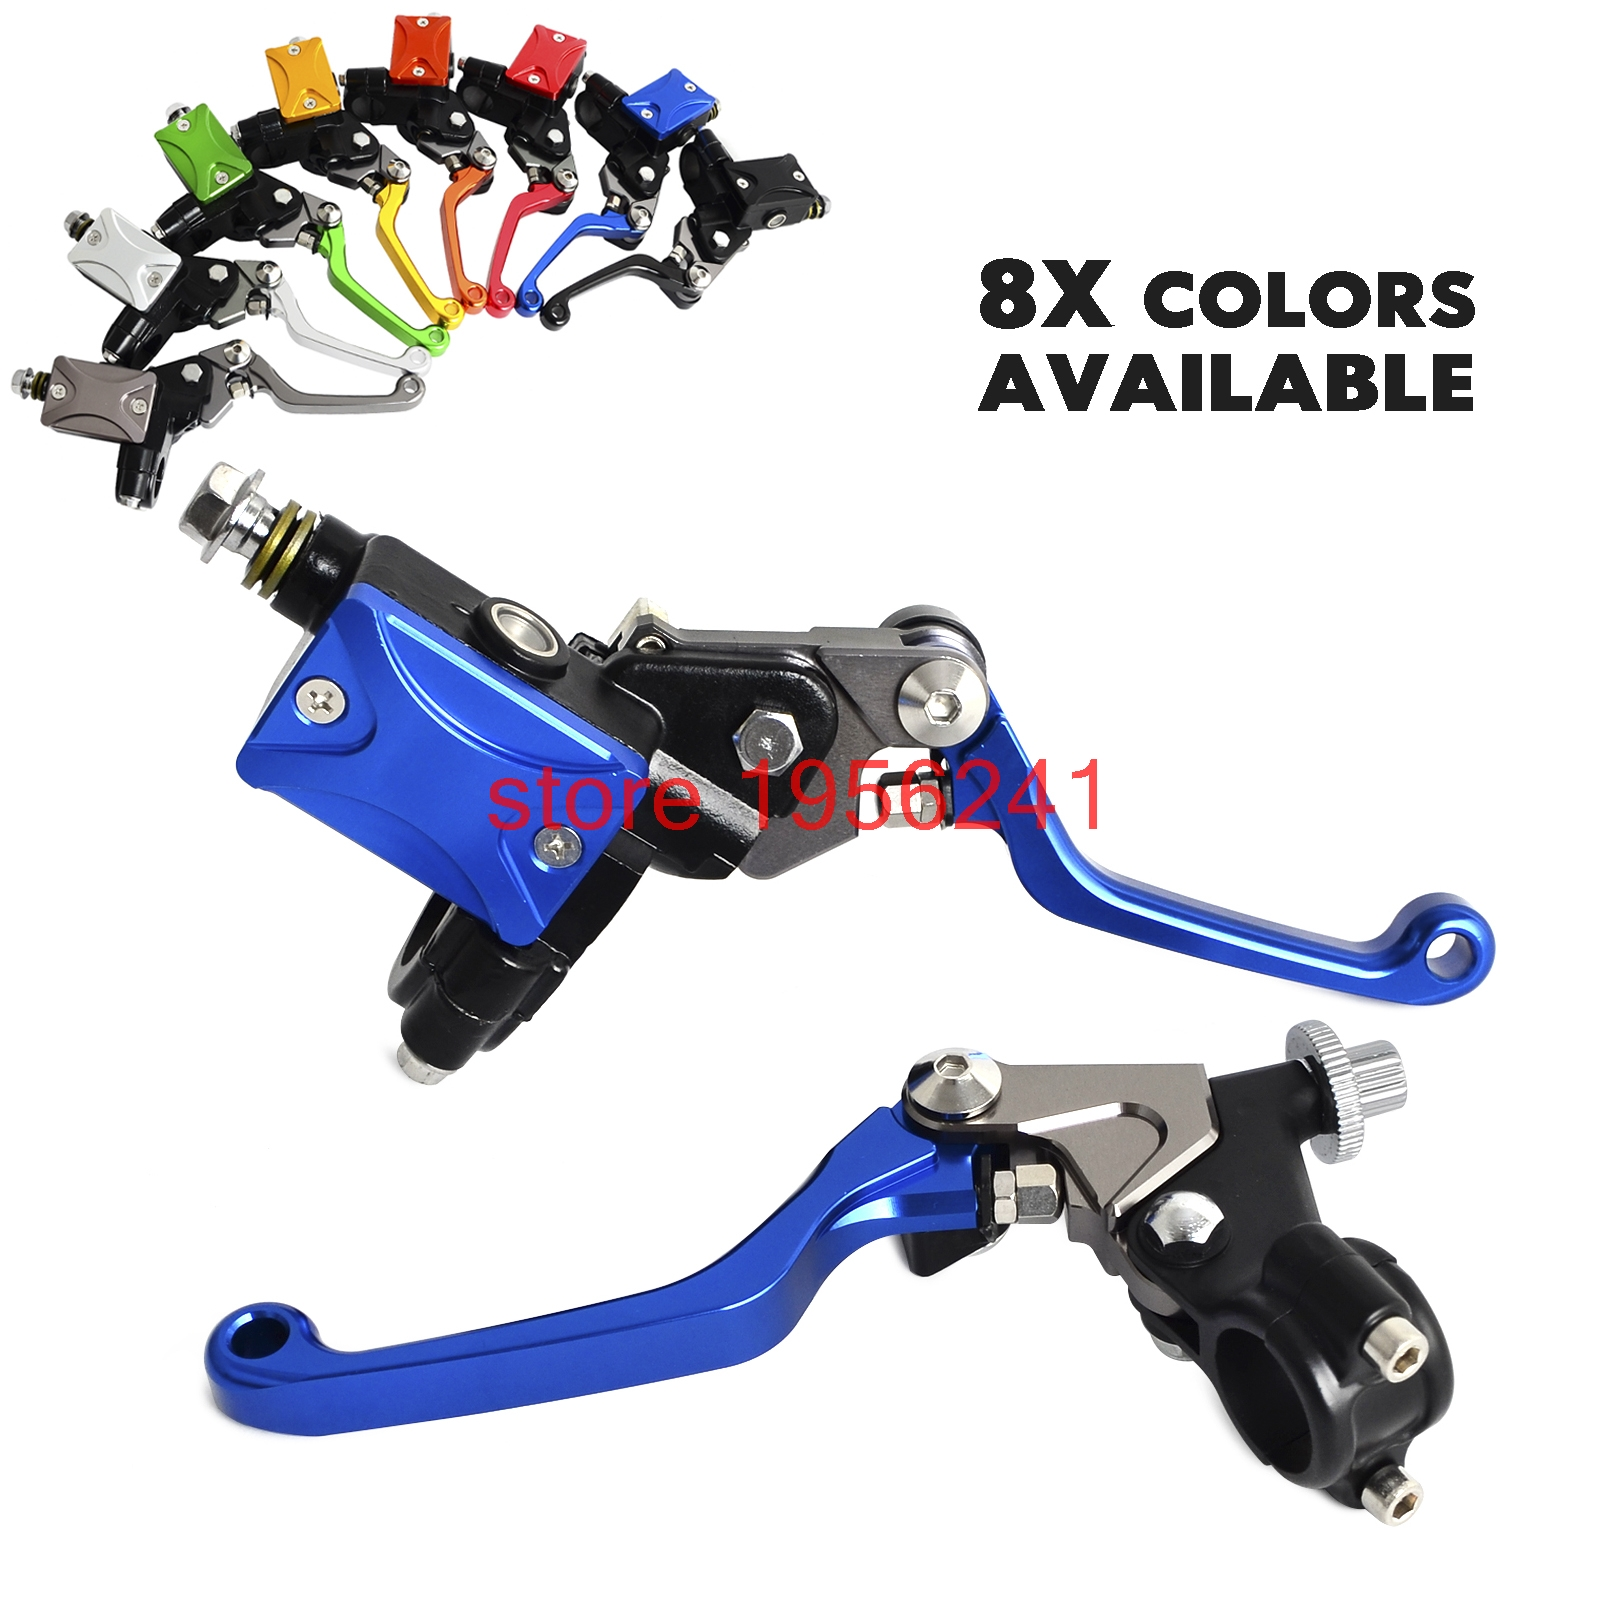 H2CNC Hydraulic Brake & Cable Clutch Lever Set Assembly For Honda CR85R CRF15R CR250R CRF250R CRF25X CRF450R CRF450X 7 8 lever brake clutch master cylinder set reservoir for honda crf150r crf250x crf250r crf450r crf450x crf230f sl230 xr250